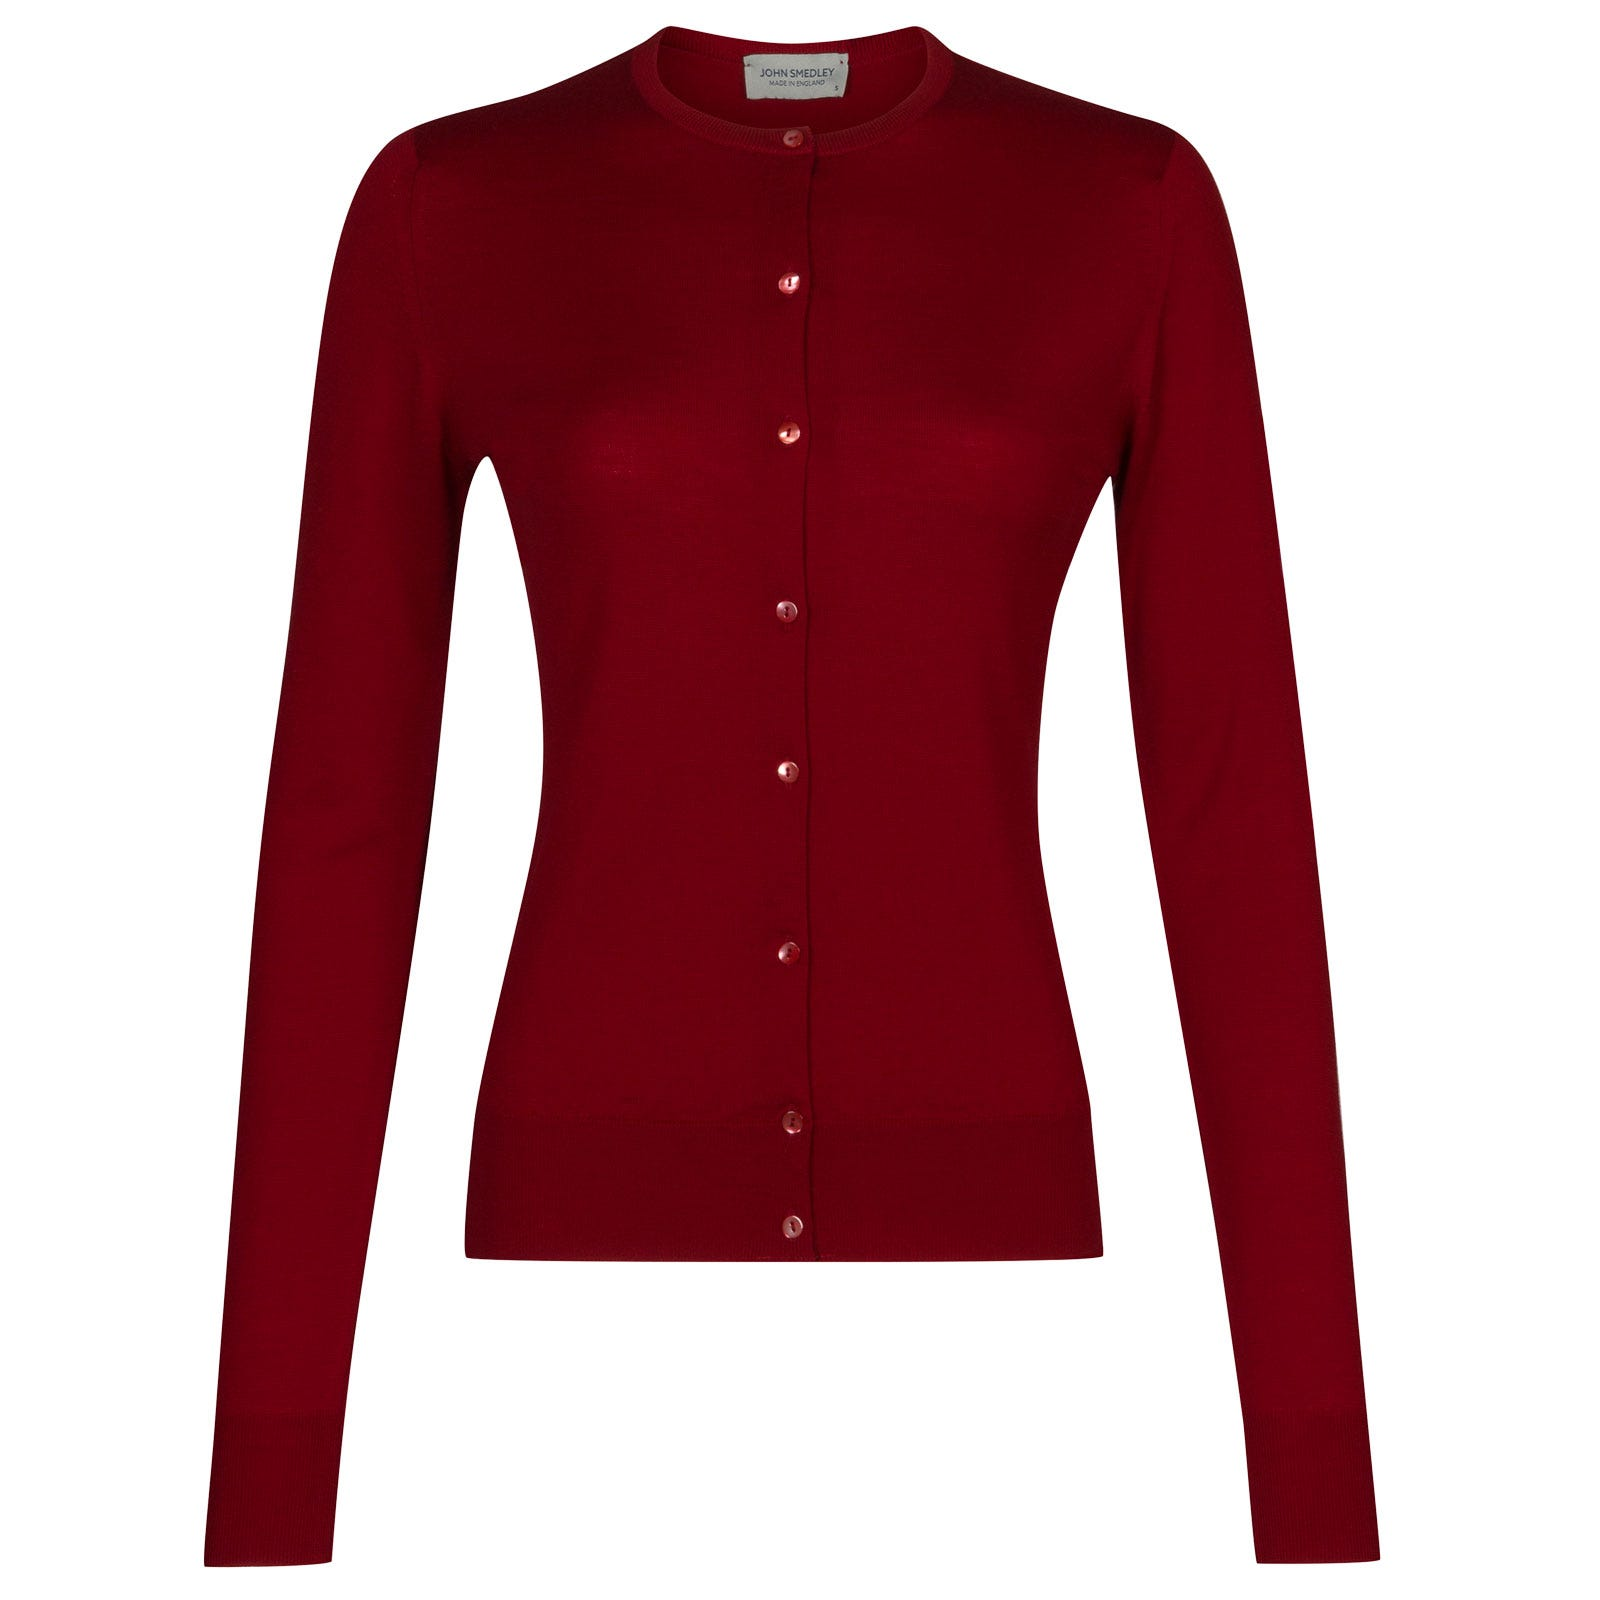 John Smedley pansy Merino Wool Cardigan in Crimson Forest-XL